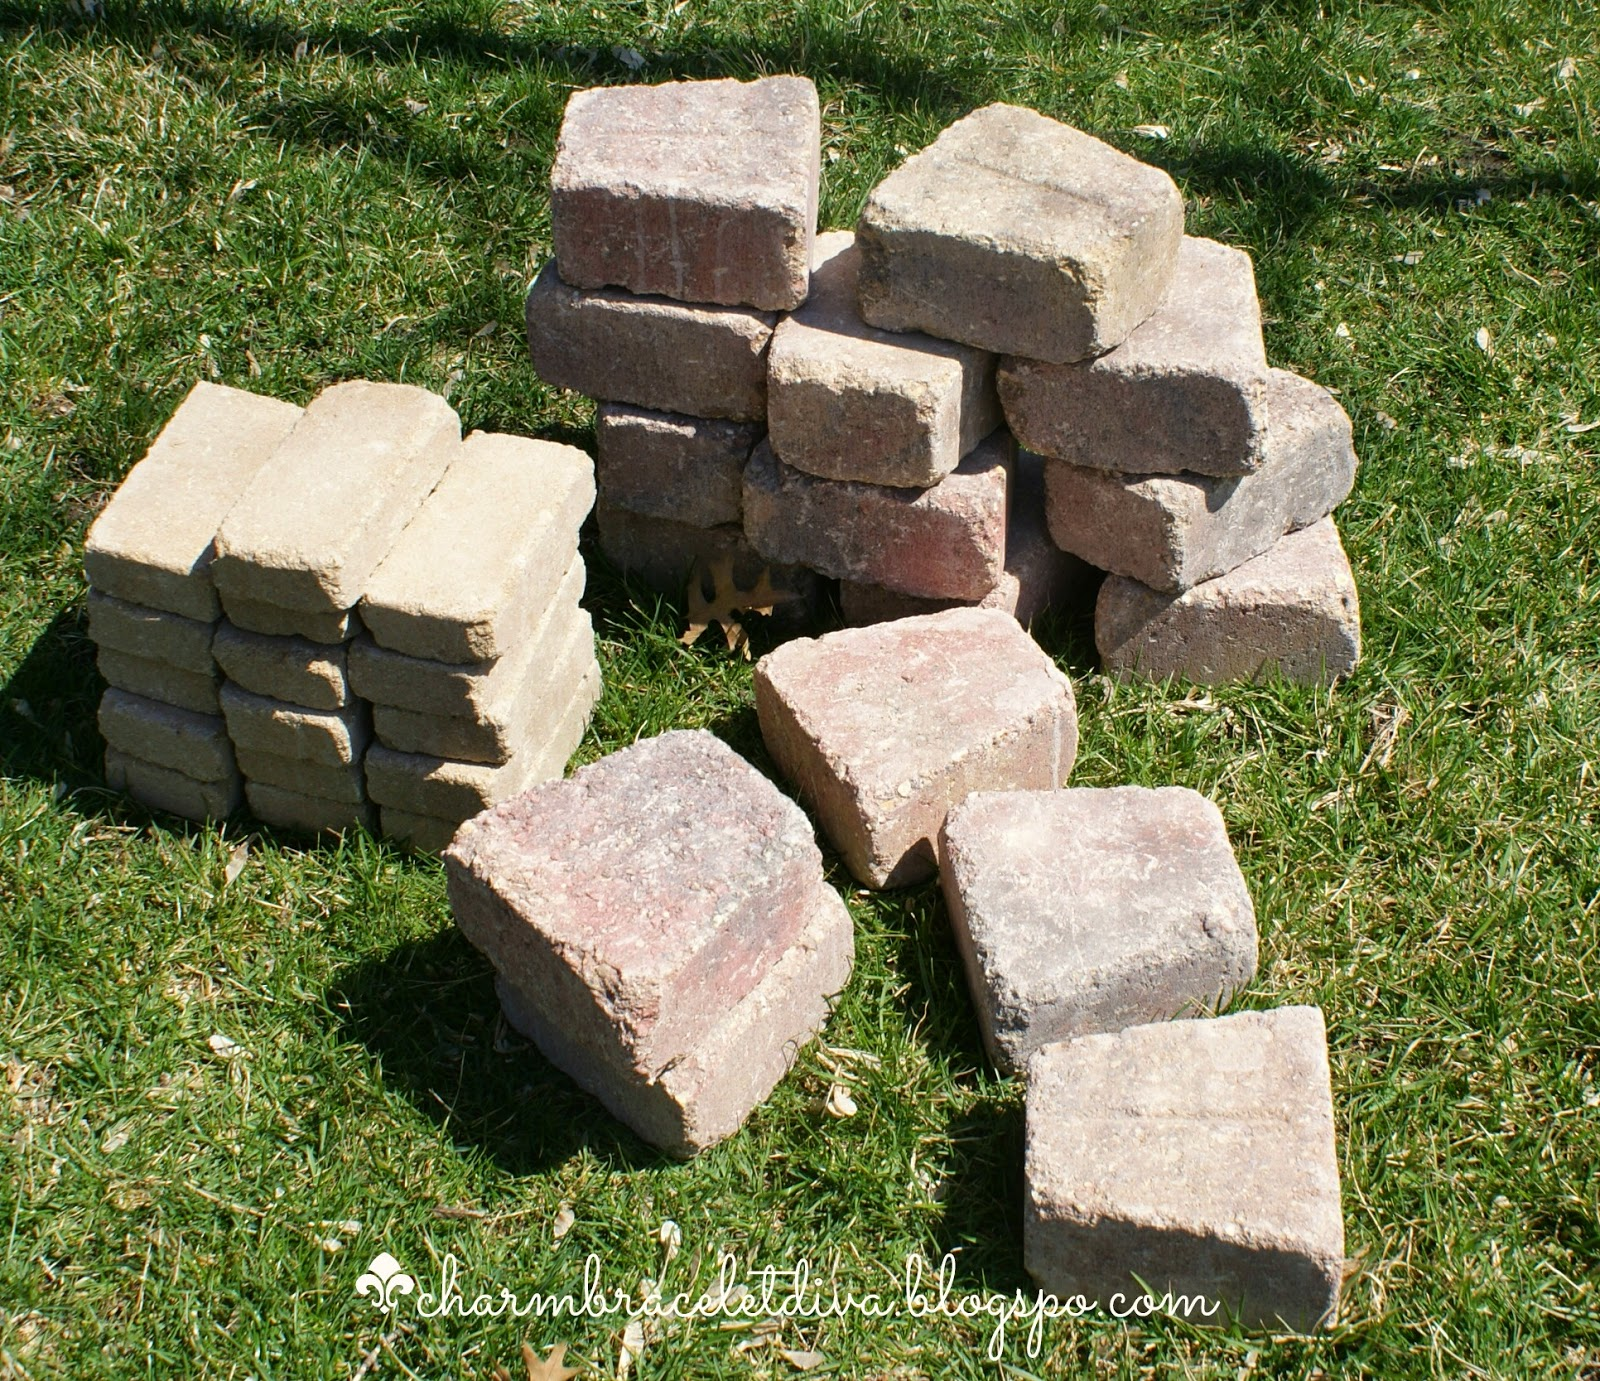 Belgian wedge blocks and Belgian small wall blocks